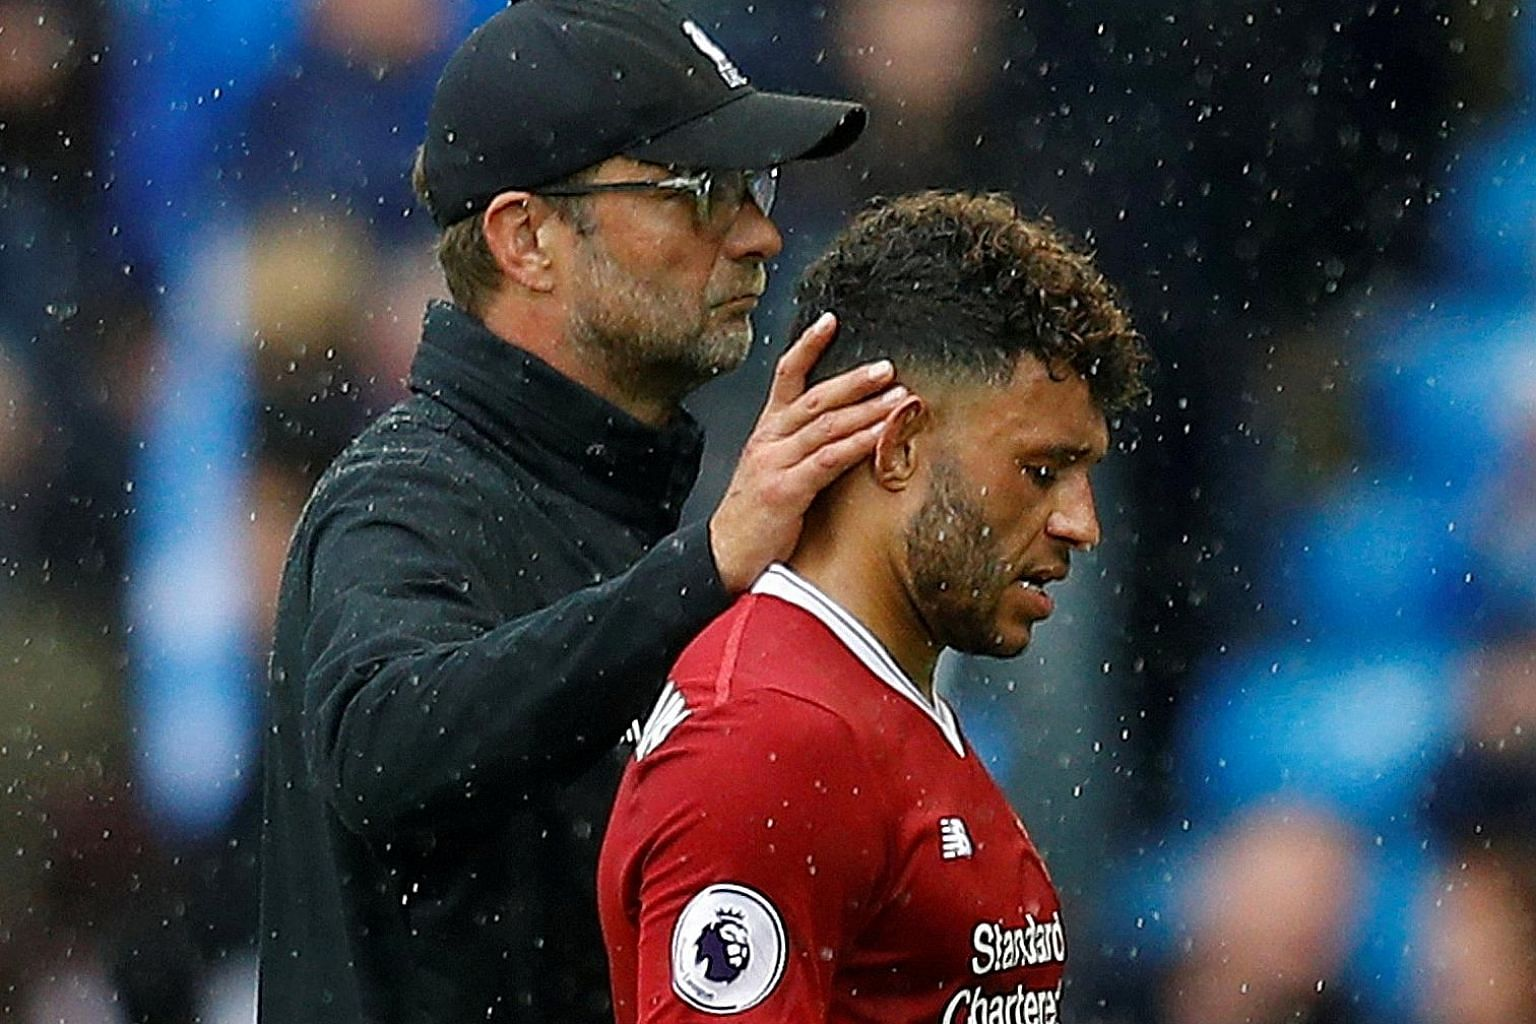 Liverpool manager Jurgen Klopp consoles Alex Oxlade- Chamberlain after the 5-0 defeat against Manchester City last Saturday.